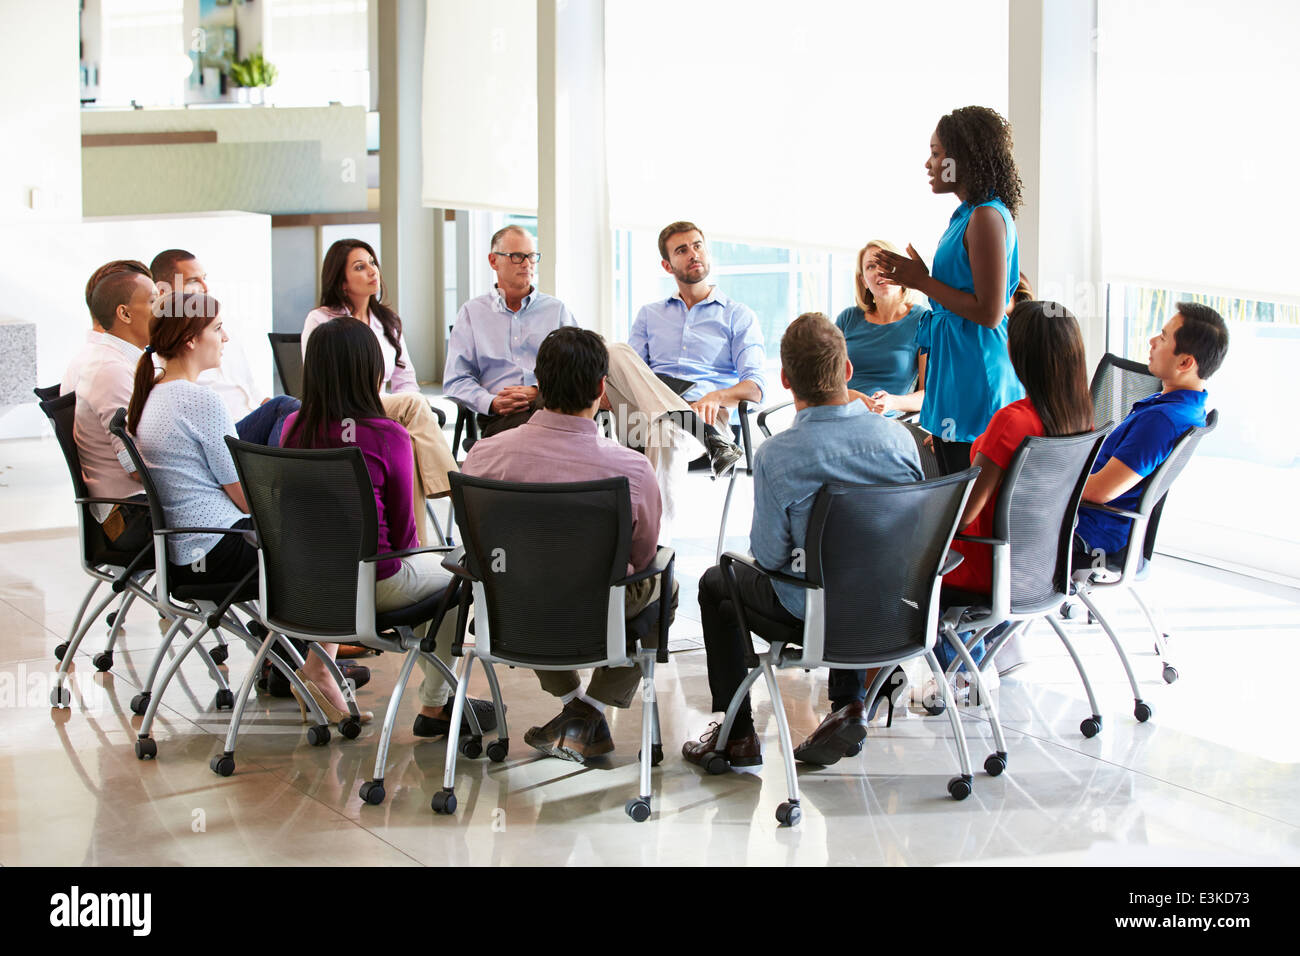 Businesswoman Addressing Multi-Cultural Office Staff Meeting - Stock Image